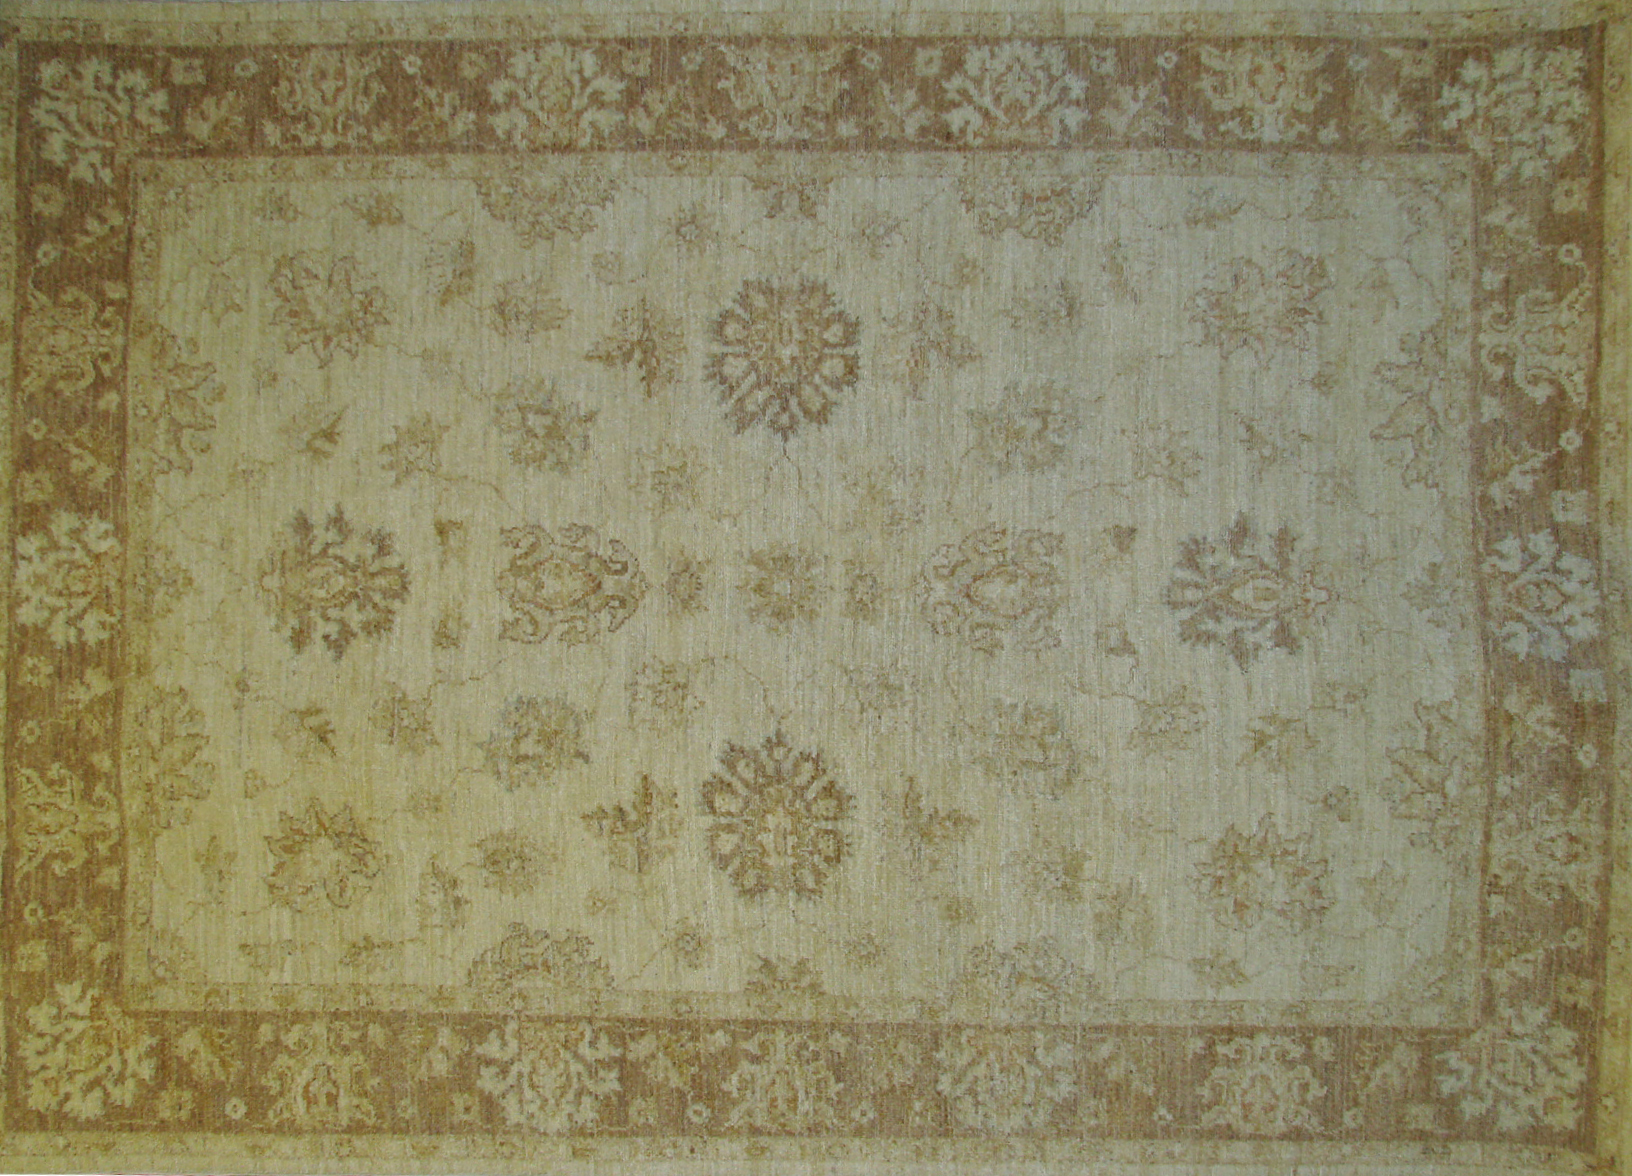 5x7/8 Peshawar Hand Knotted Wool Area Rug - MR013442